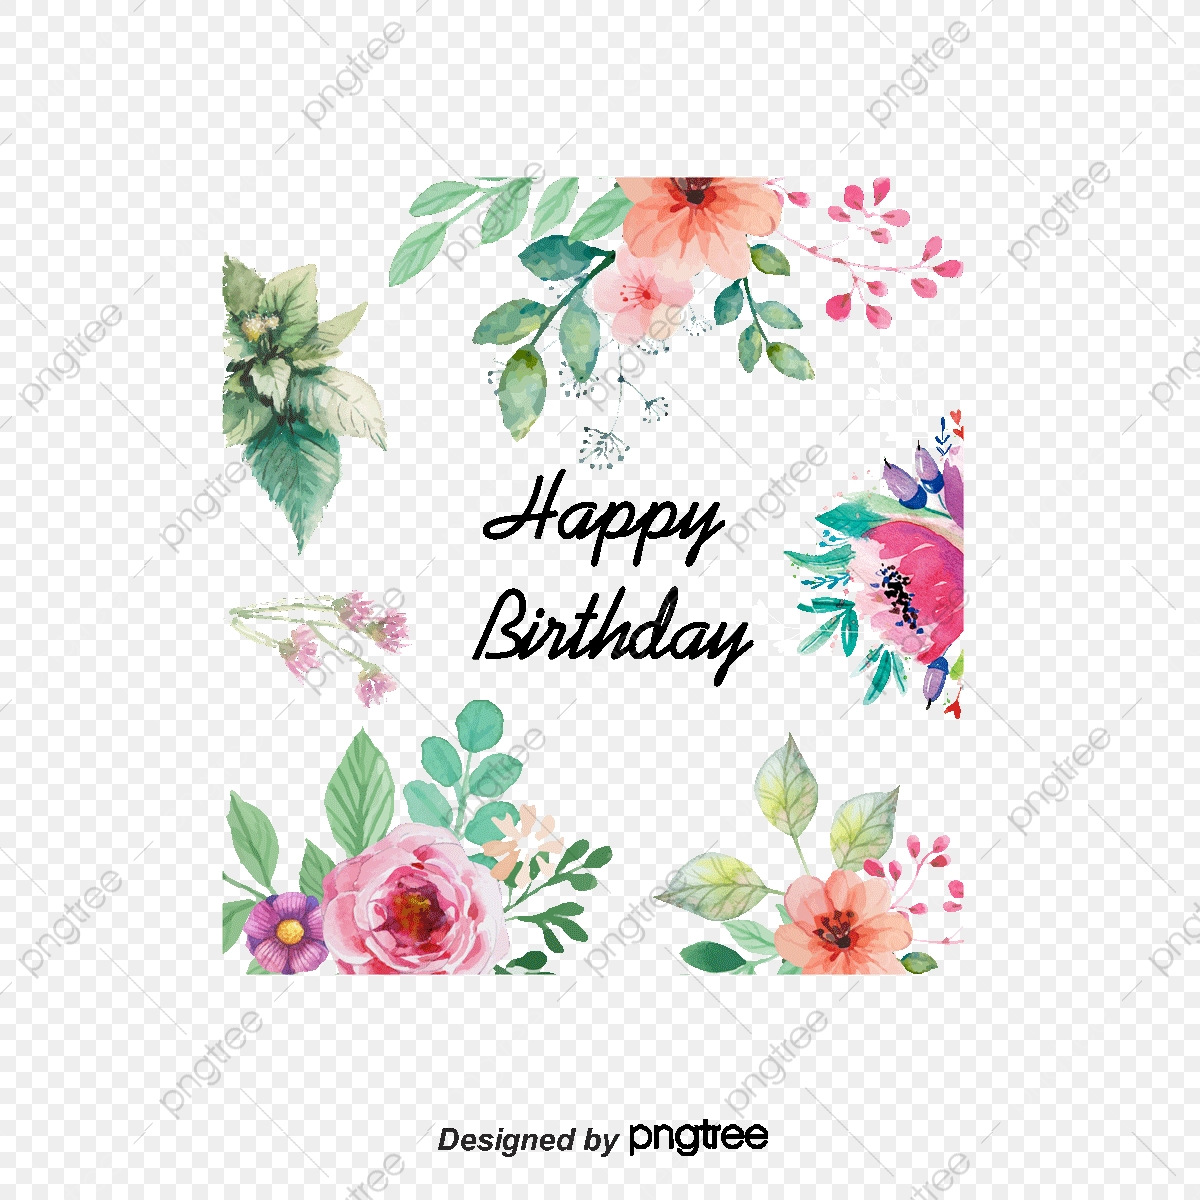 Vector Flowers Greeting Cards Watercolor Style Flowers Birthday Card Element Flowers Vector Png Transparent Clipart Image And Psd File For Free Download